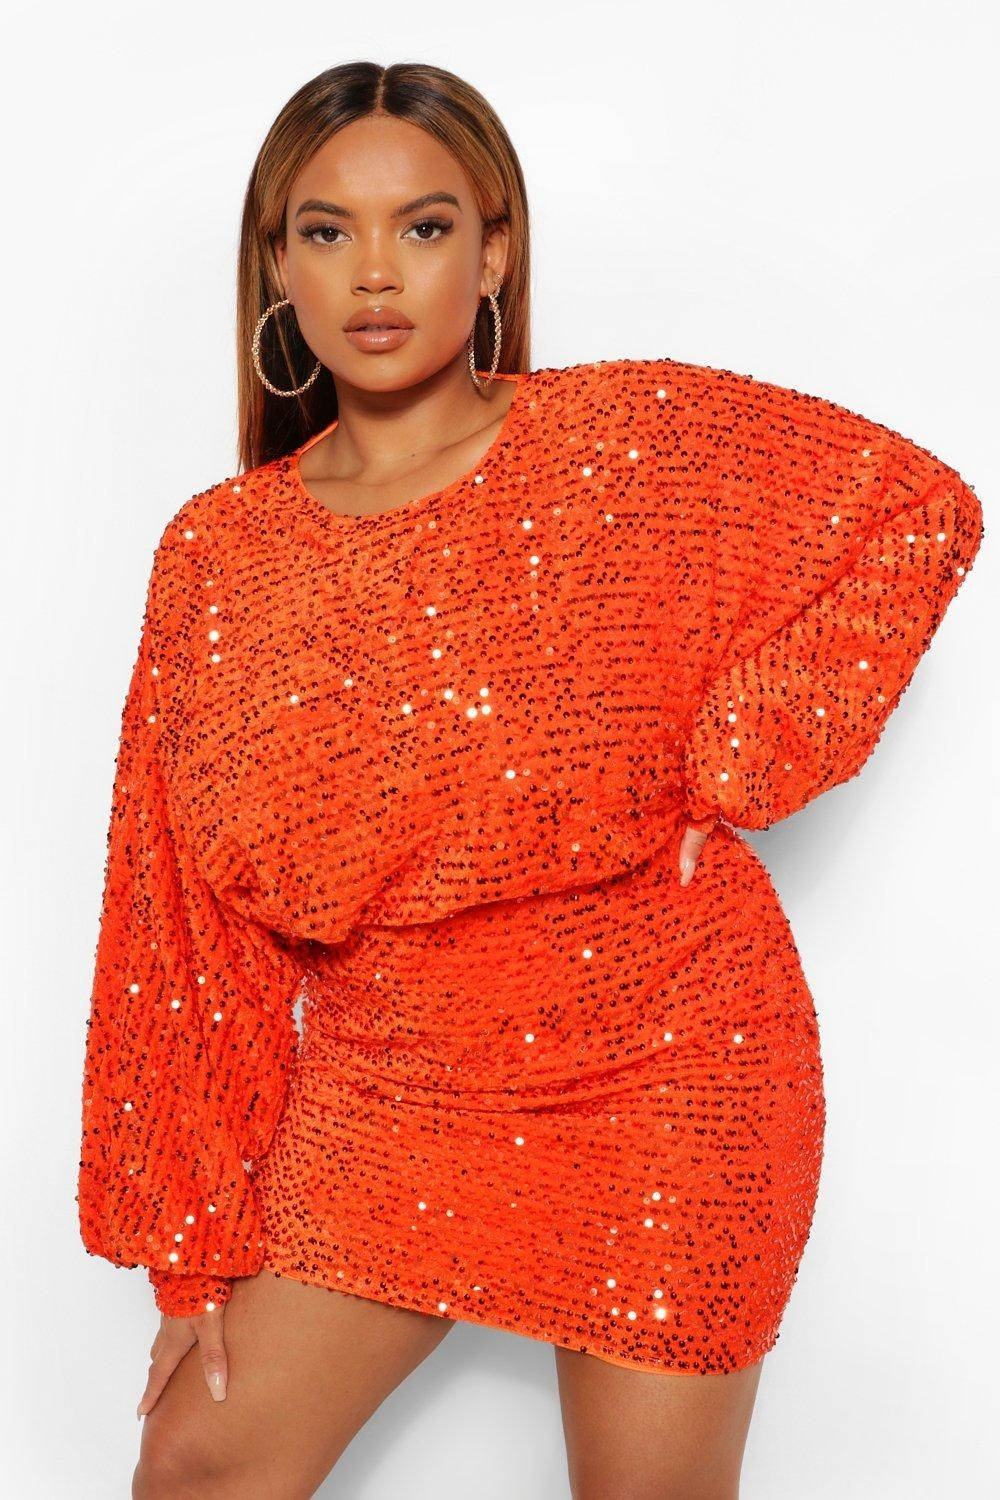 plus size model with red sequins, elastic waist, and large sleeves